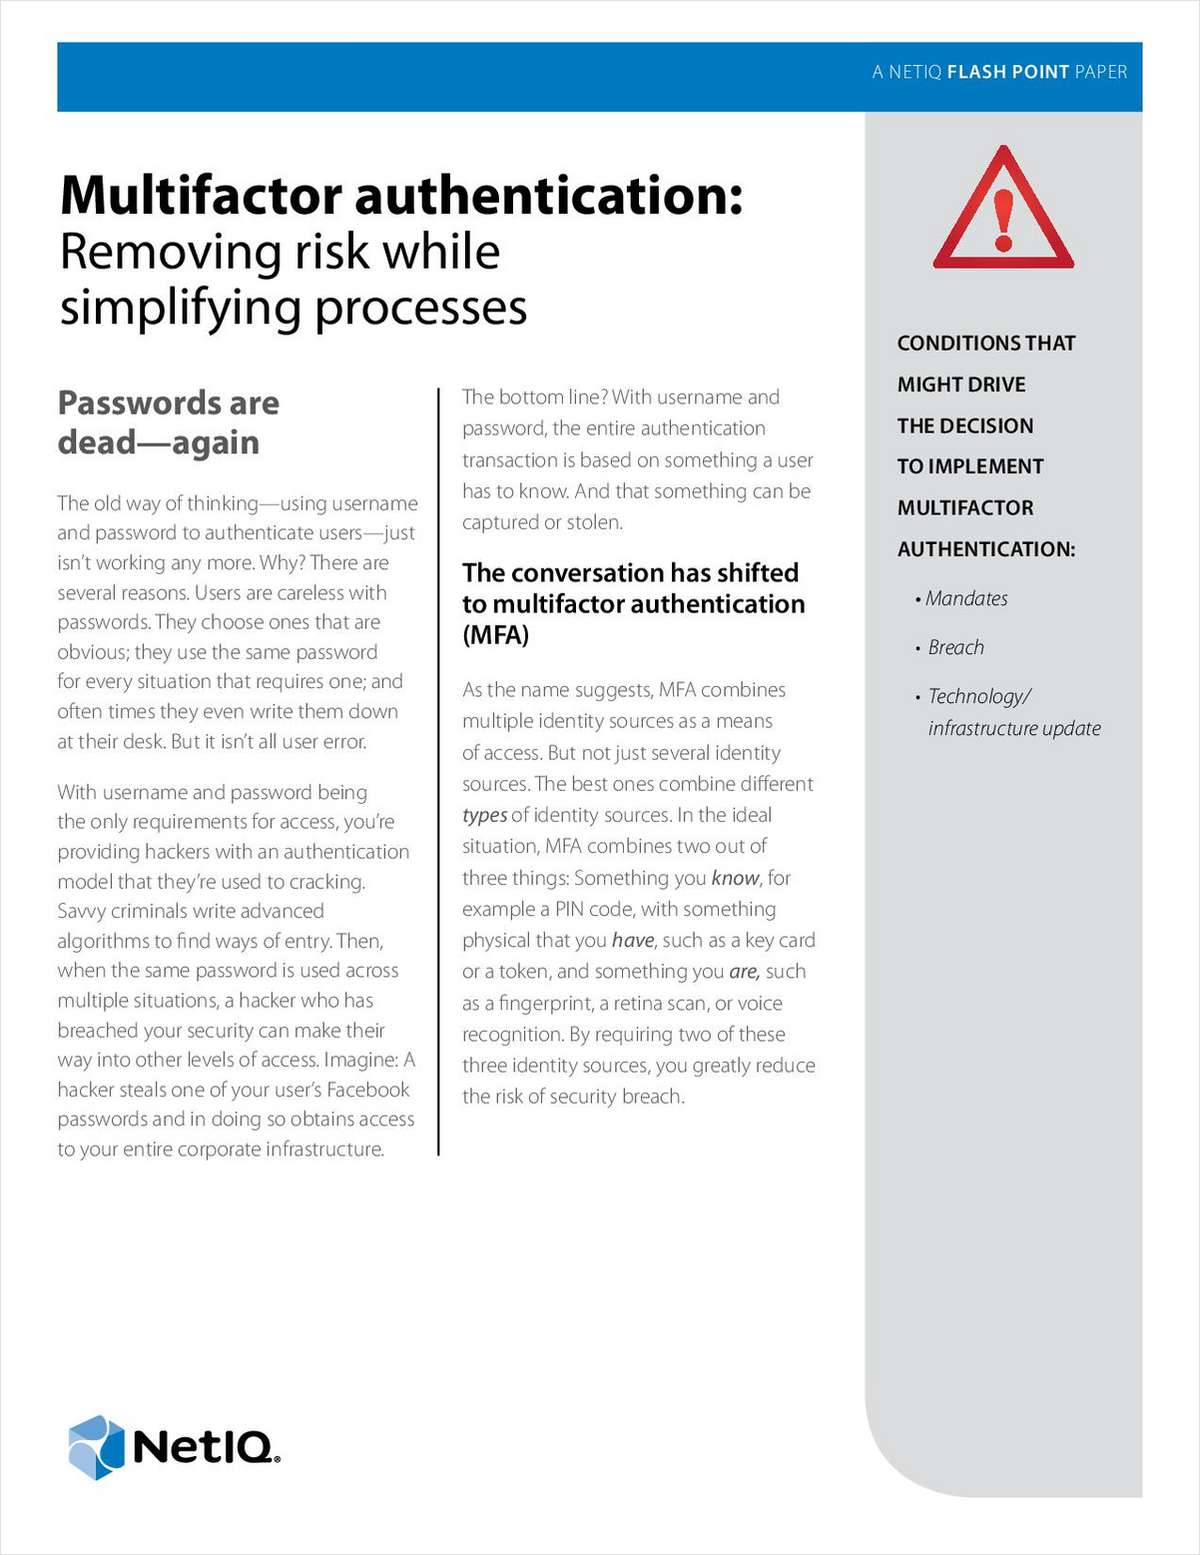 Multifactor Authentication: Removing Risk While Simplifying Processes